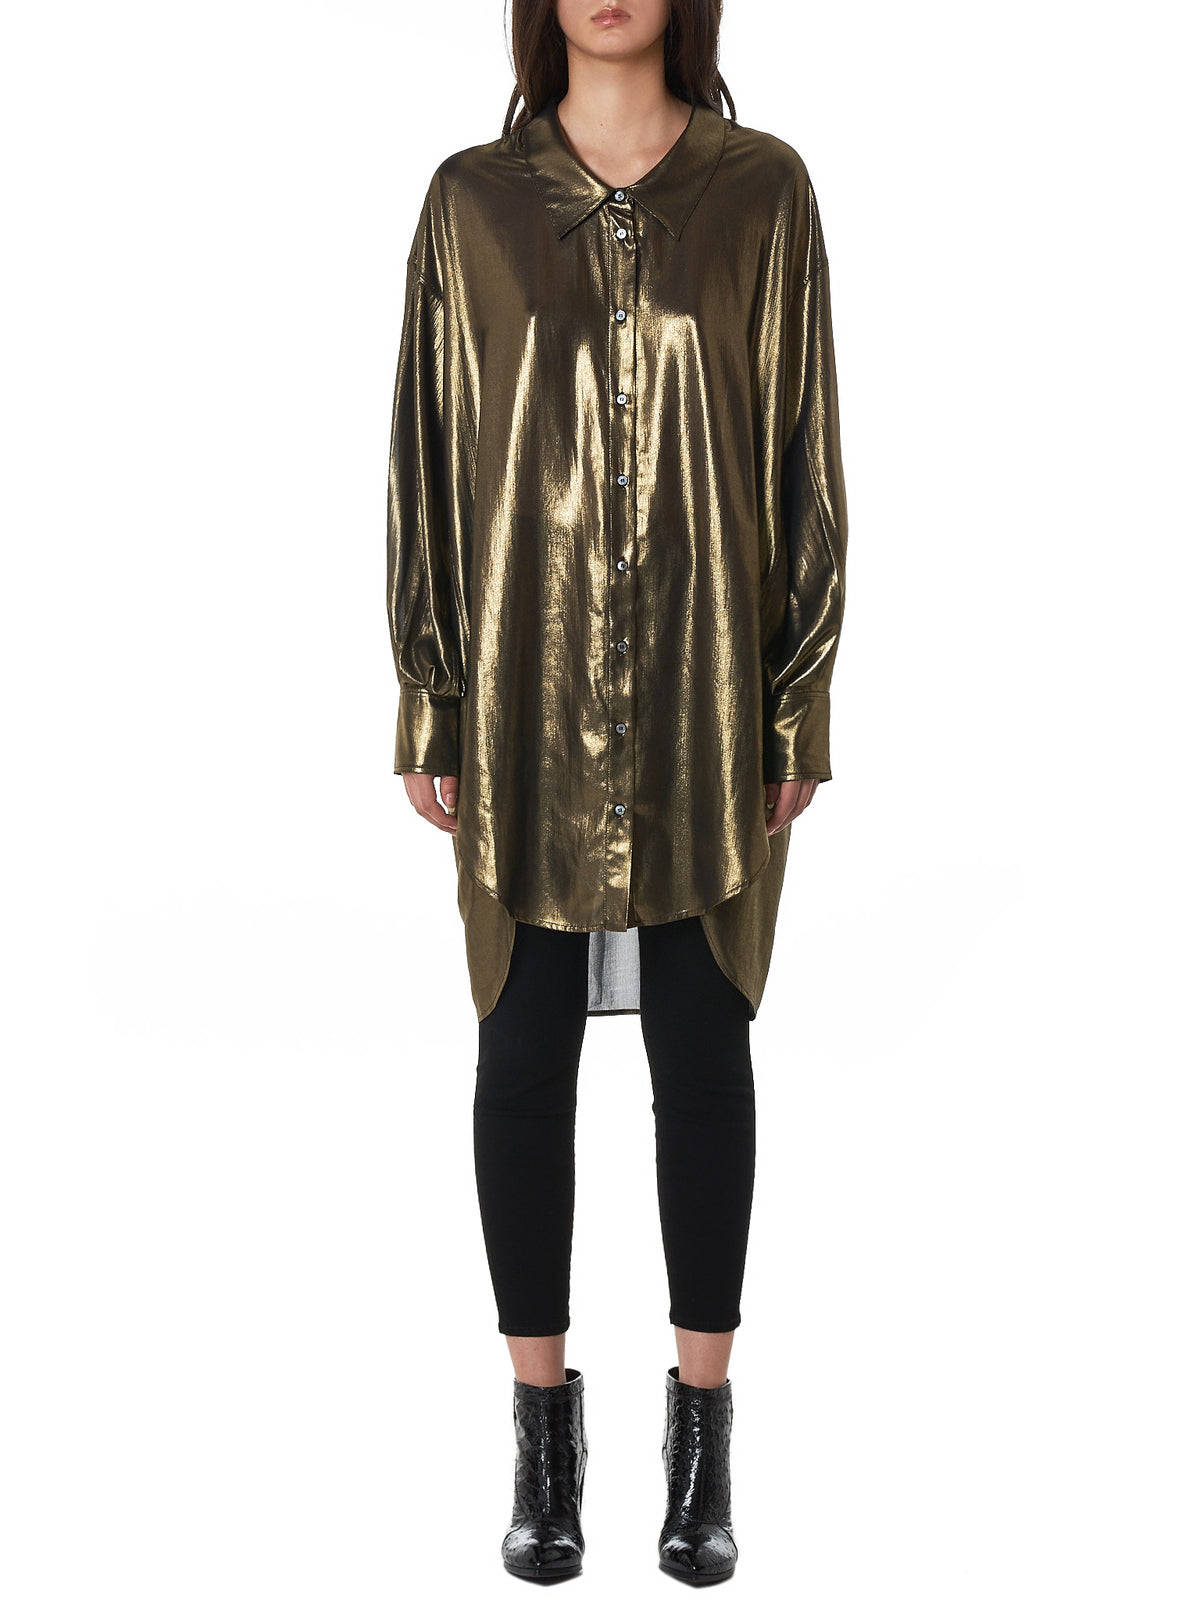 Faith Connexion Metallic Shirt - Hlorenzo Front